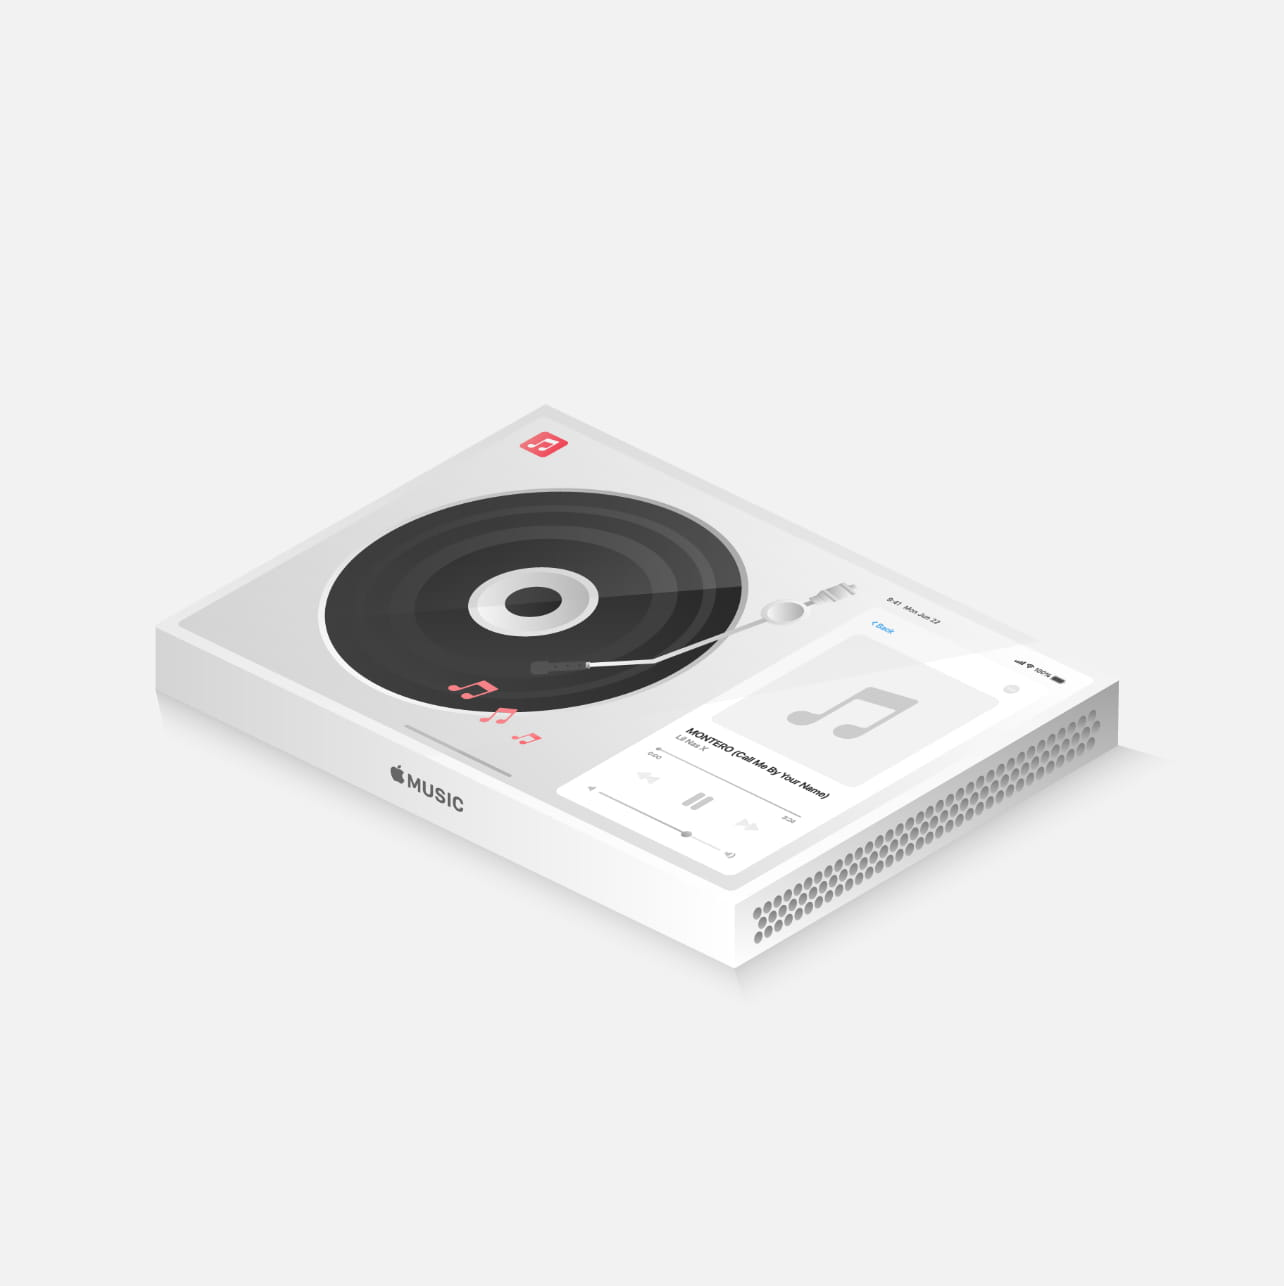 amy-jones-apple-concept-collection-music-vinyl-record-player-cropped@2x